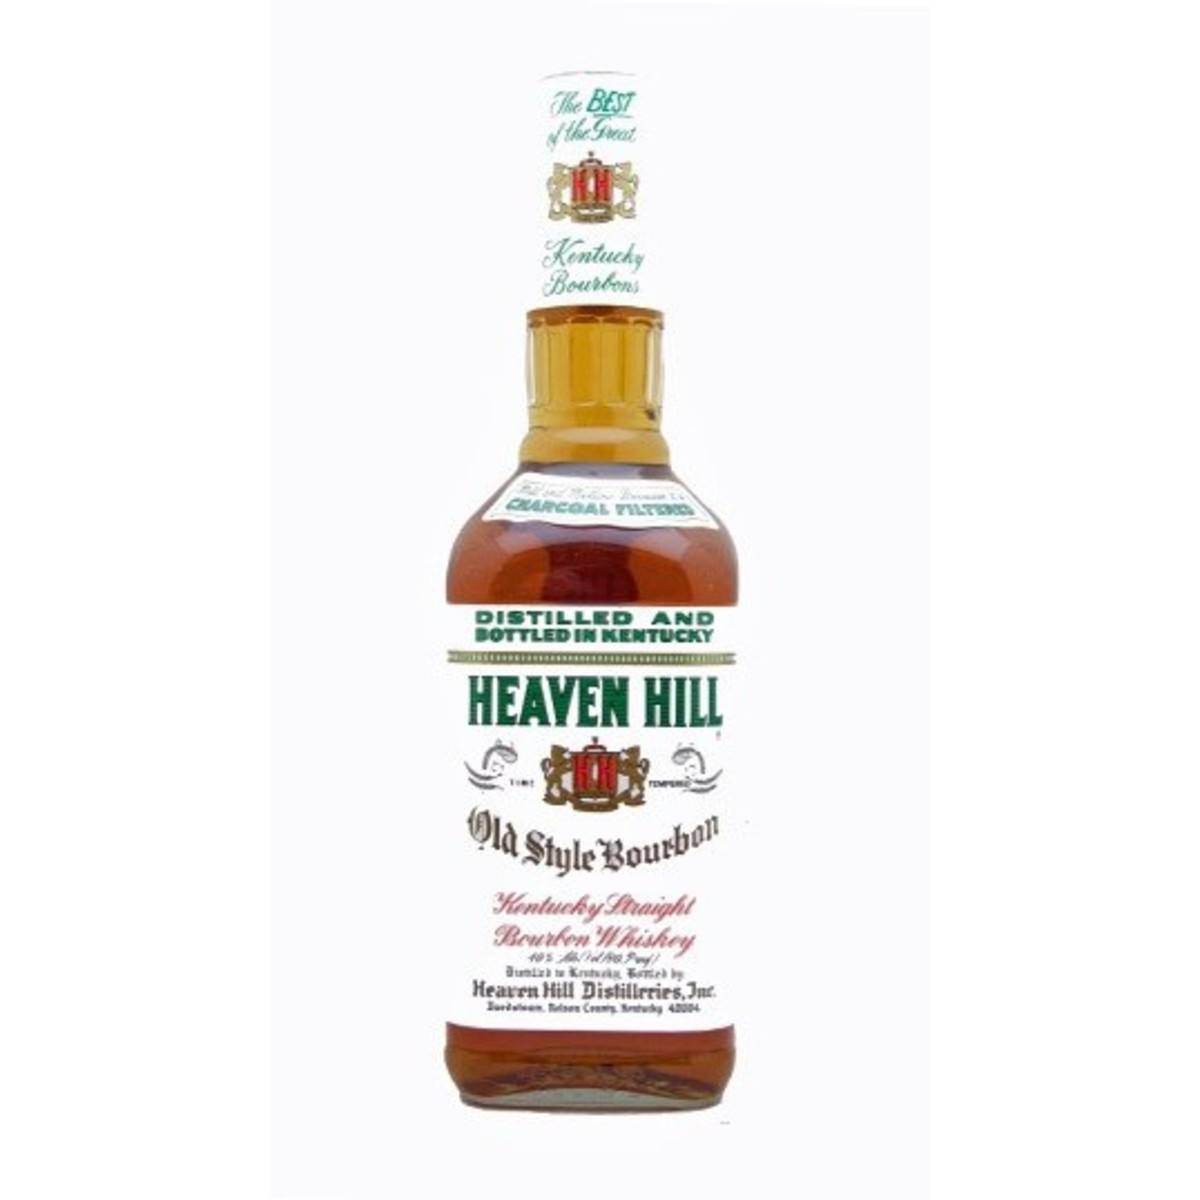 Heaven Hill White Label is aged for six years and offers excellent value for its price.